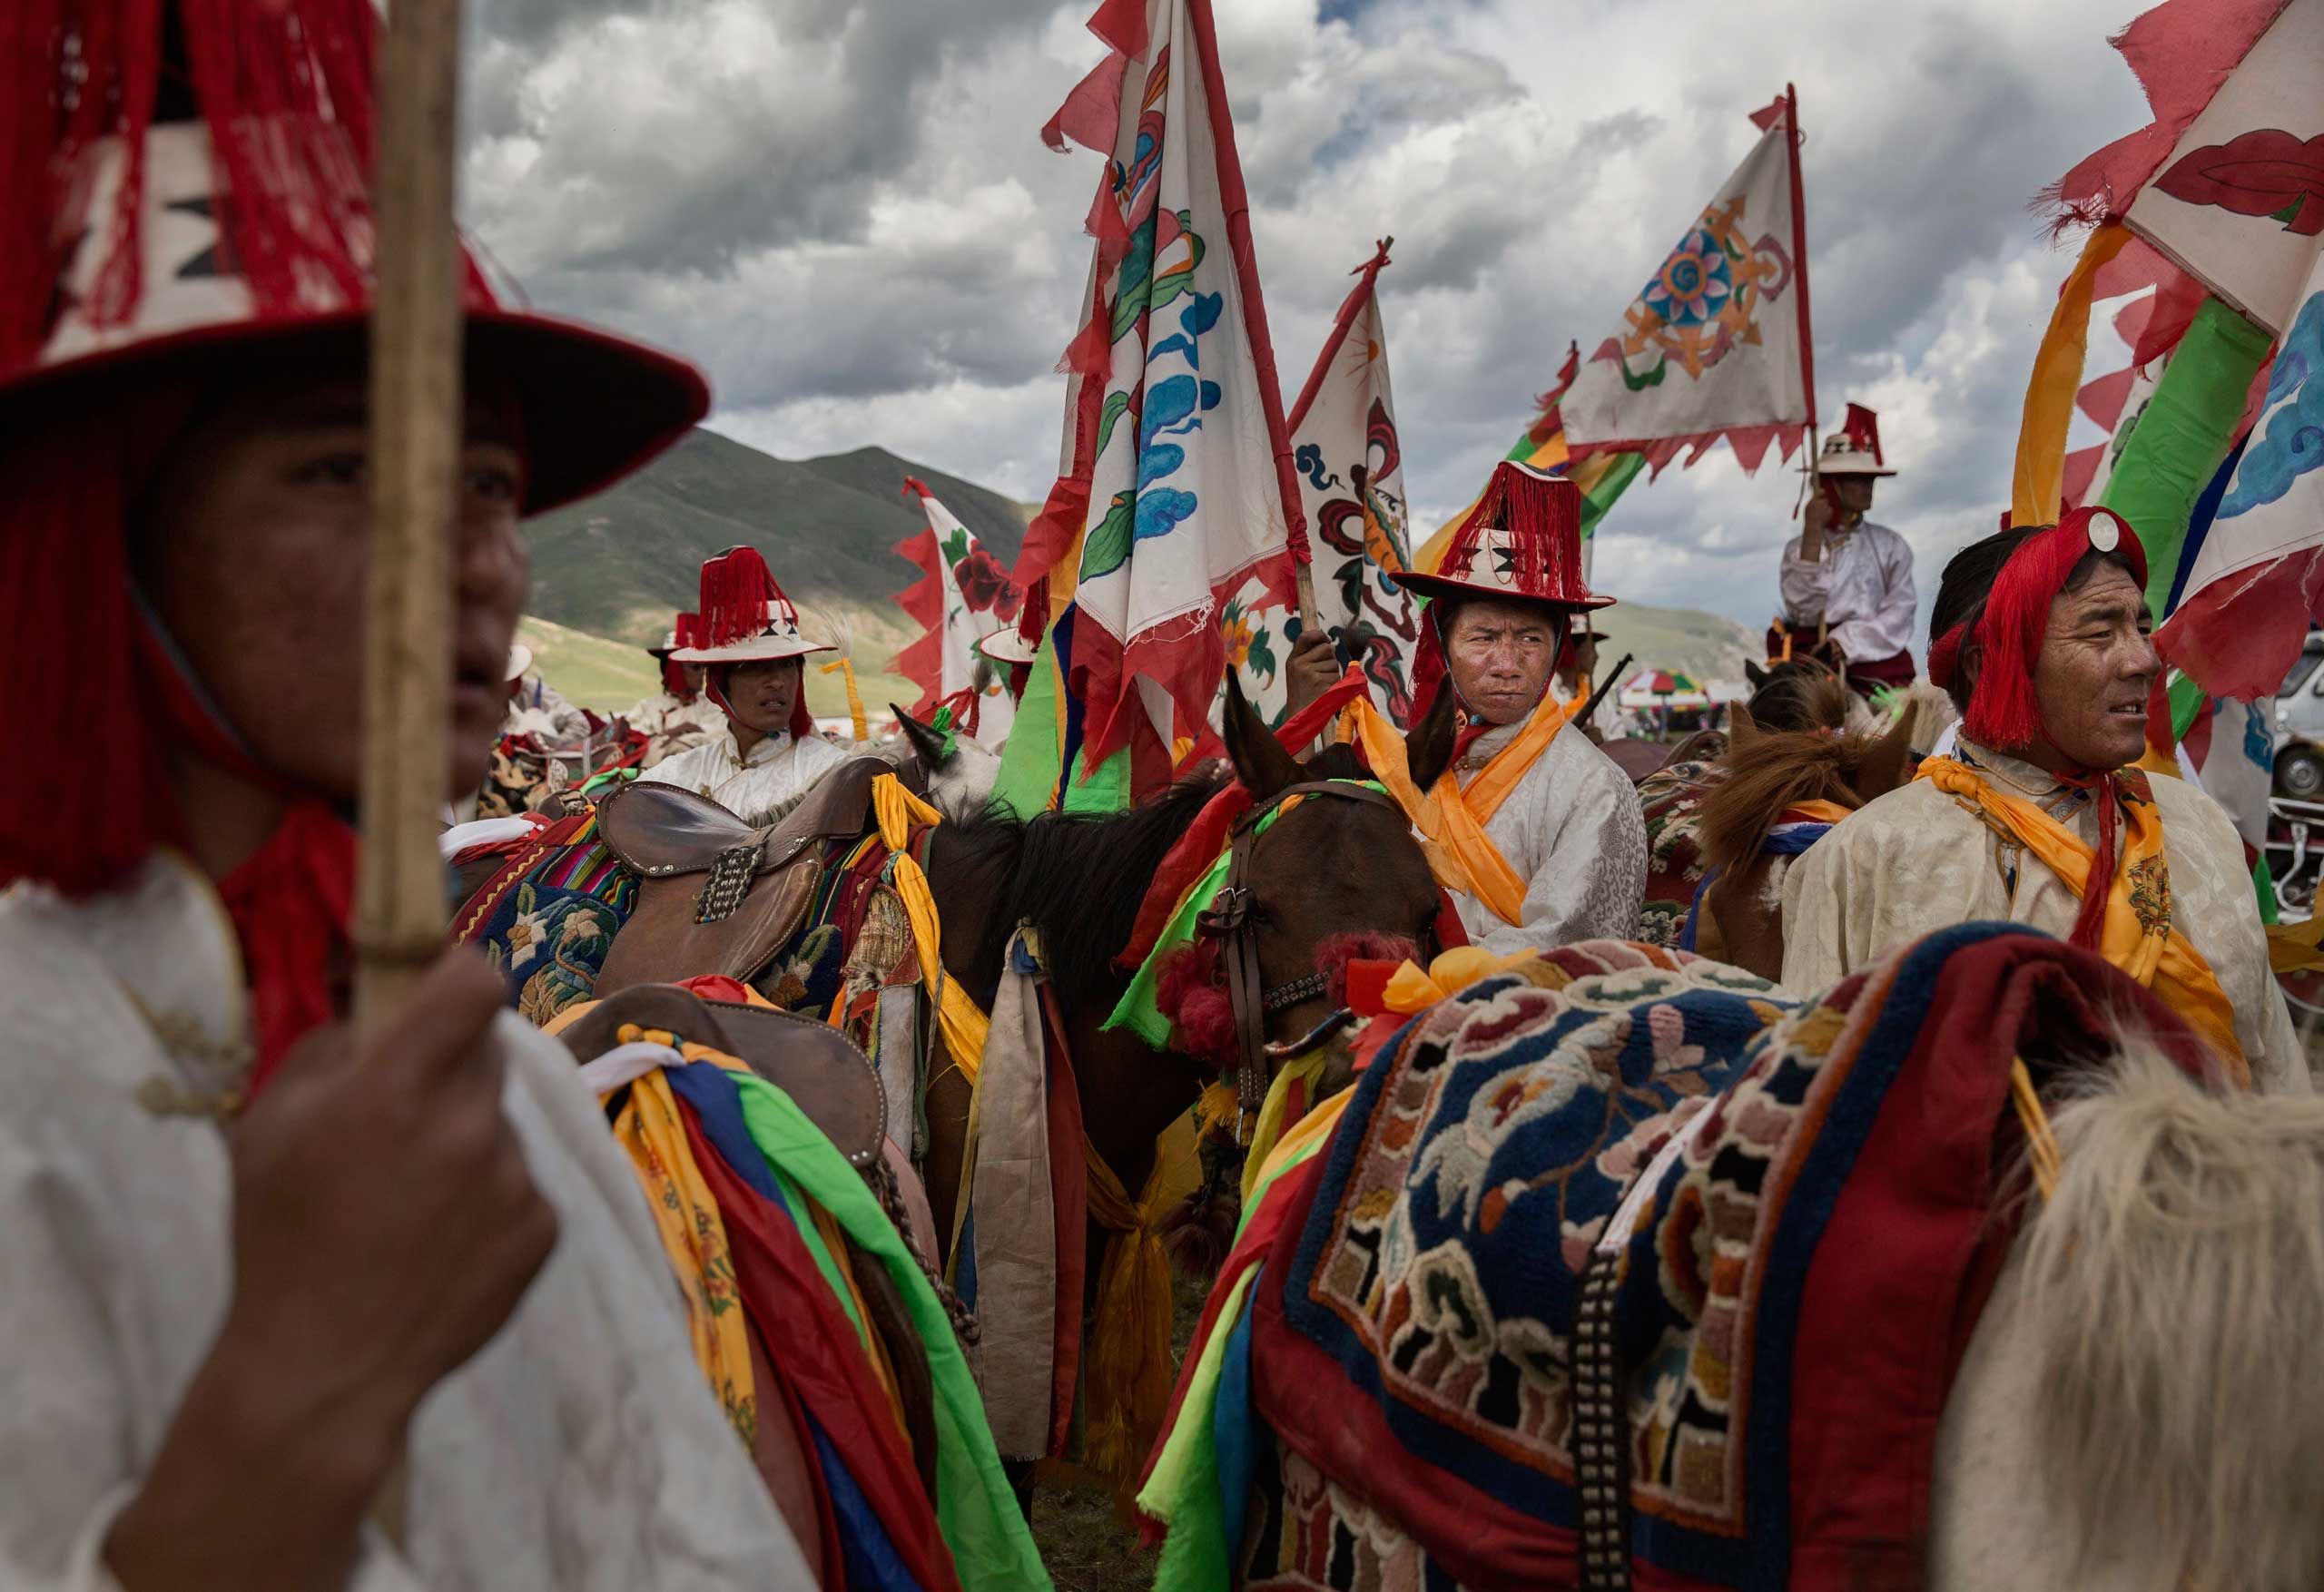 Ethnic Tibetan nomads wait to perform skills during a riding competition at a local festival on the Tibetan Plateau in Yushu County, on July 26, 2015.